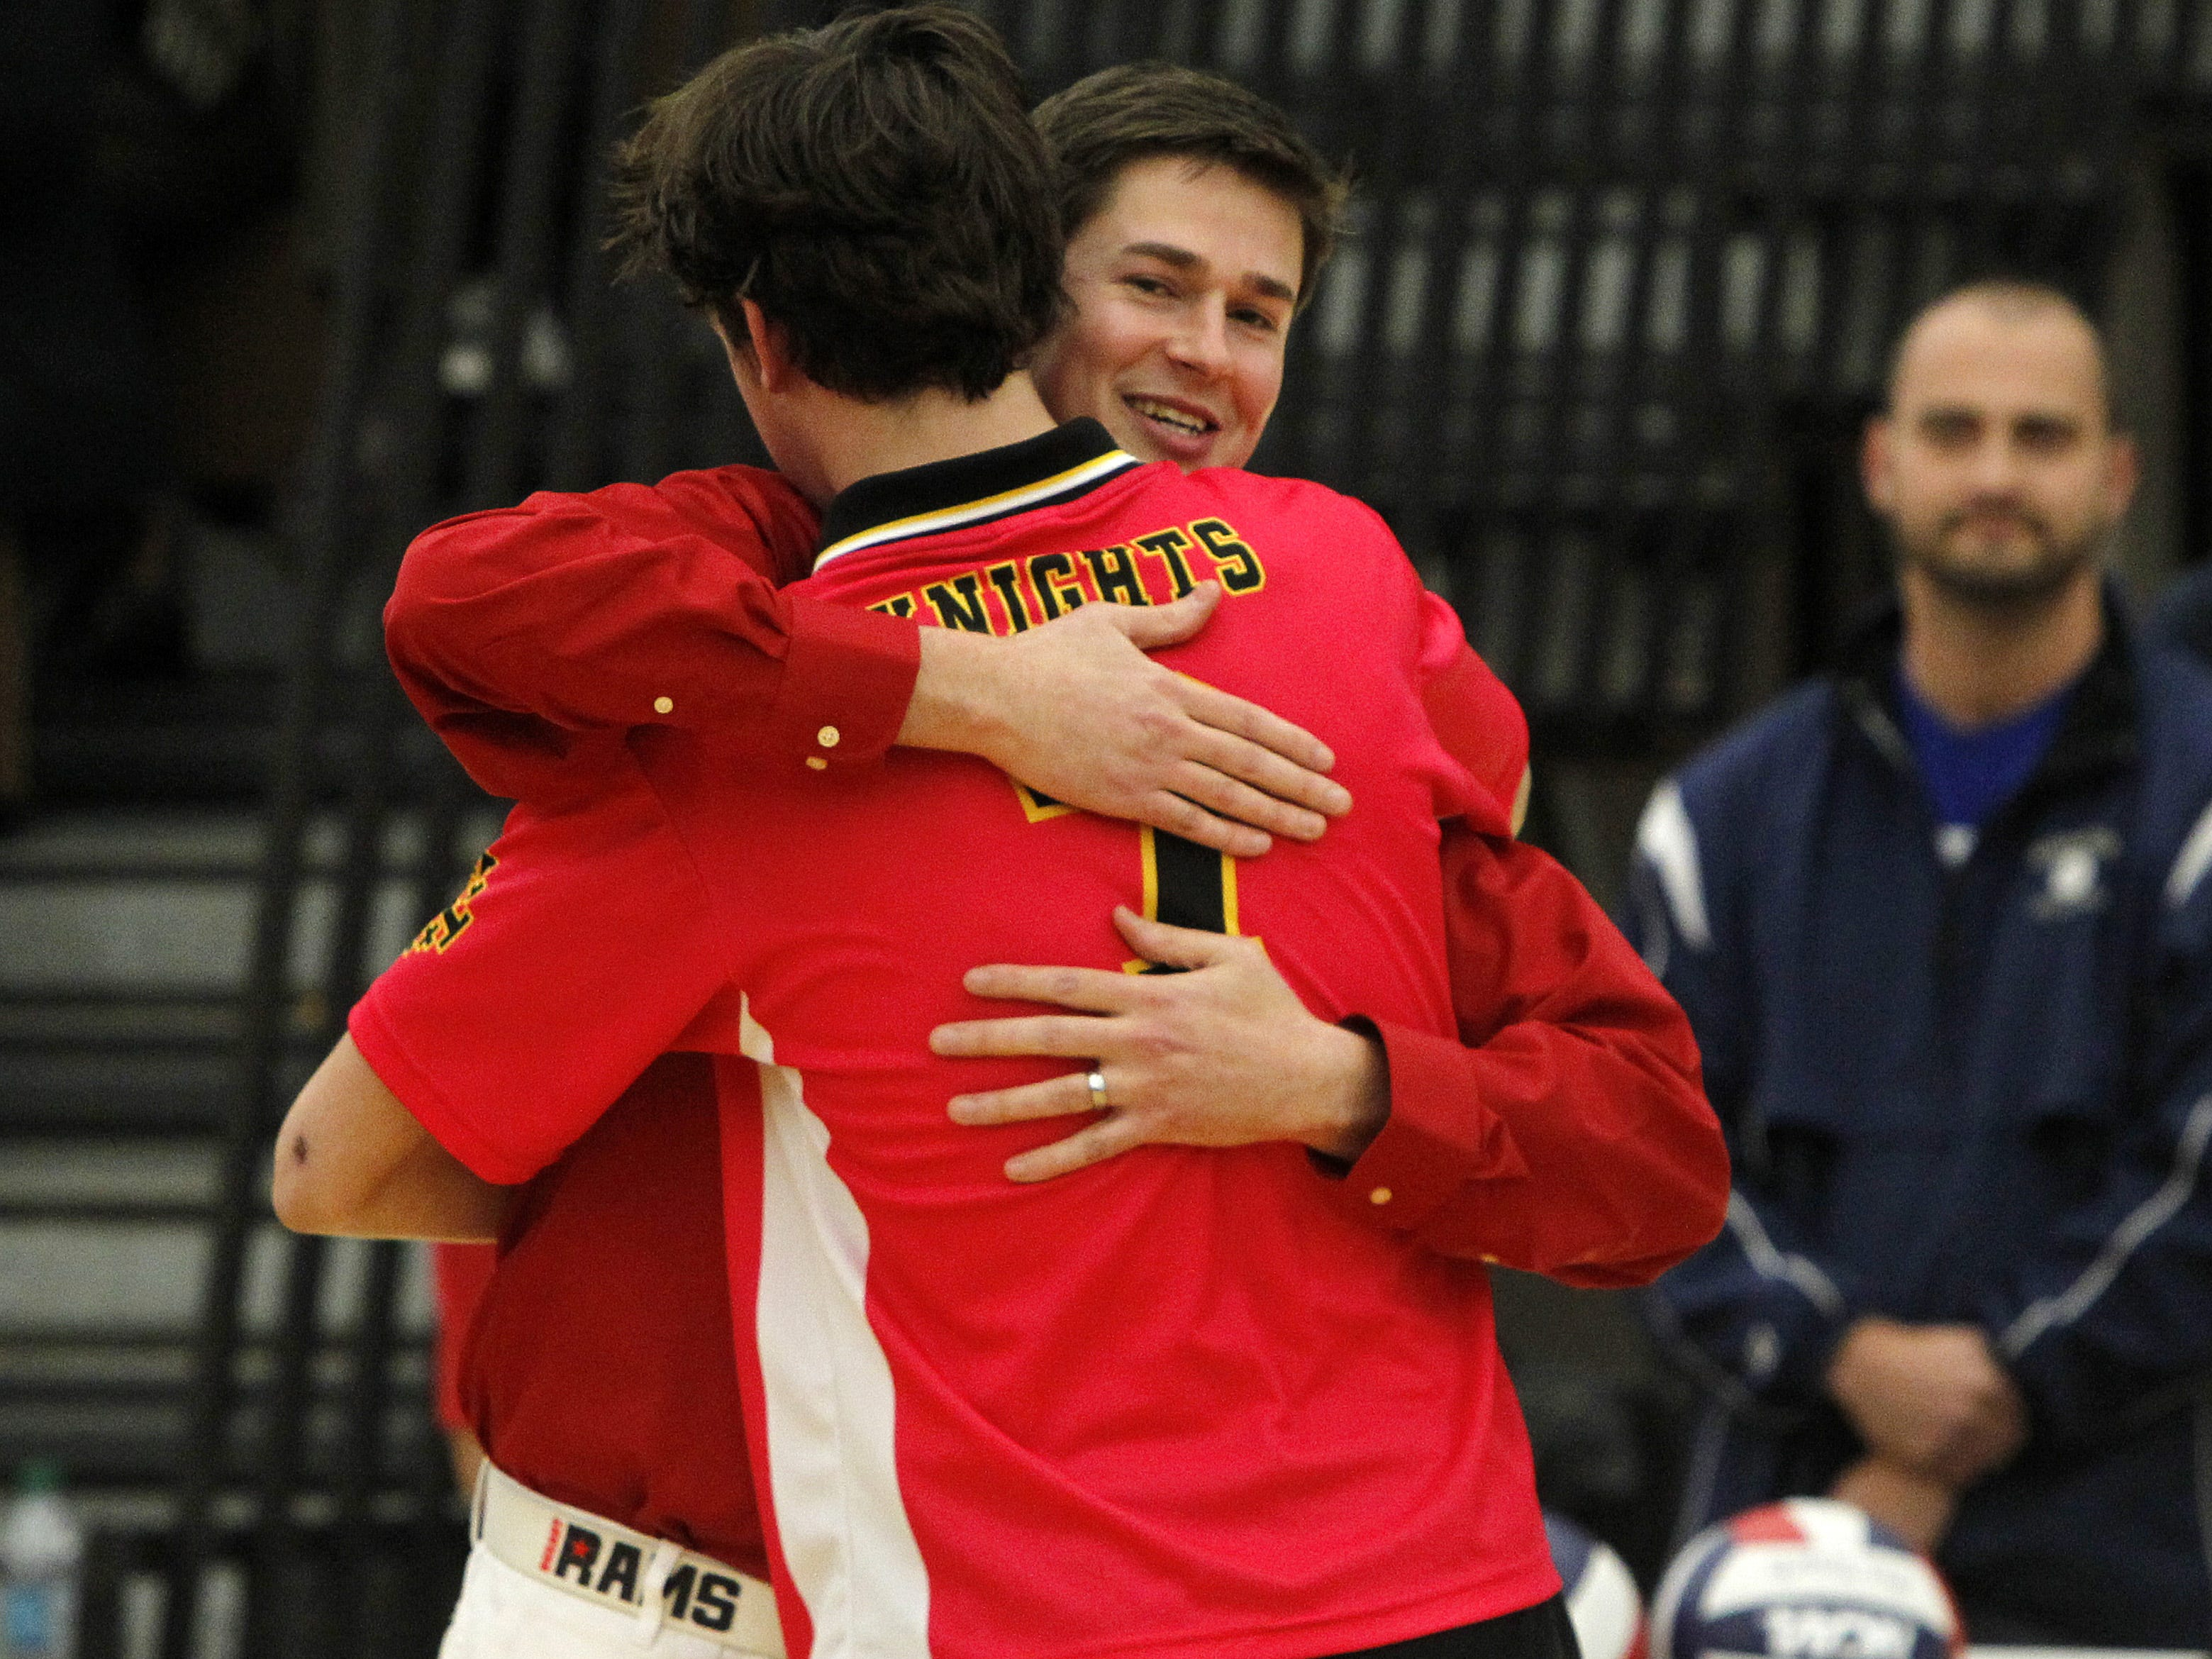 Fairport's head coach John O'Dell, right, hugs his younger brother, McQuaid star Steve O'Dell, prior to boys volleyball action between the Fairport Red Raiders and the McQuaid Jesuit Knights at Webster Schroeder high school in Webster Thursday evening, November 10, 2011. McQuaid won the title in straight sets.